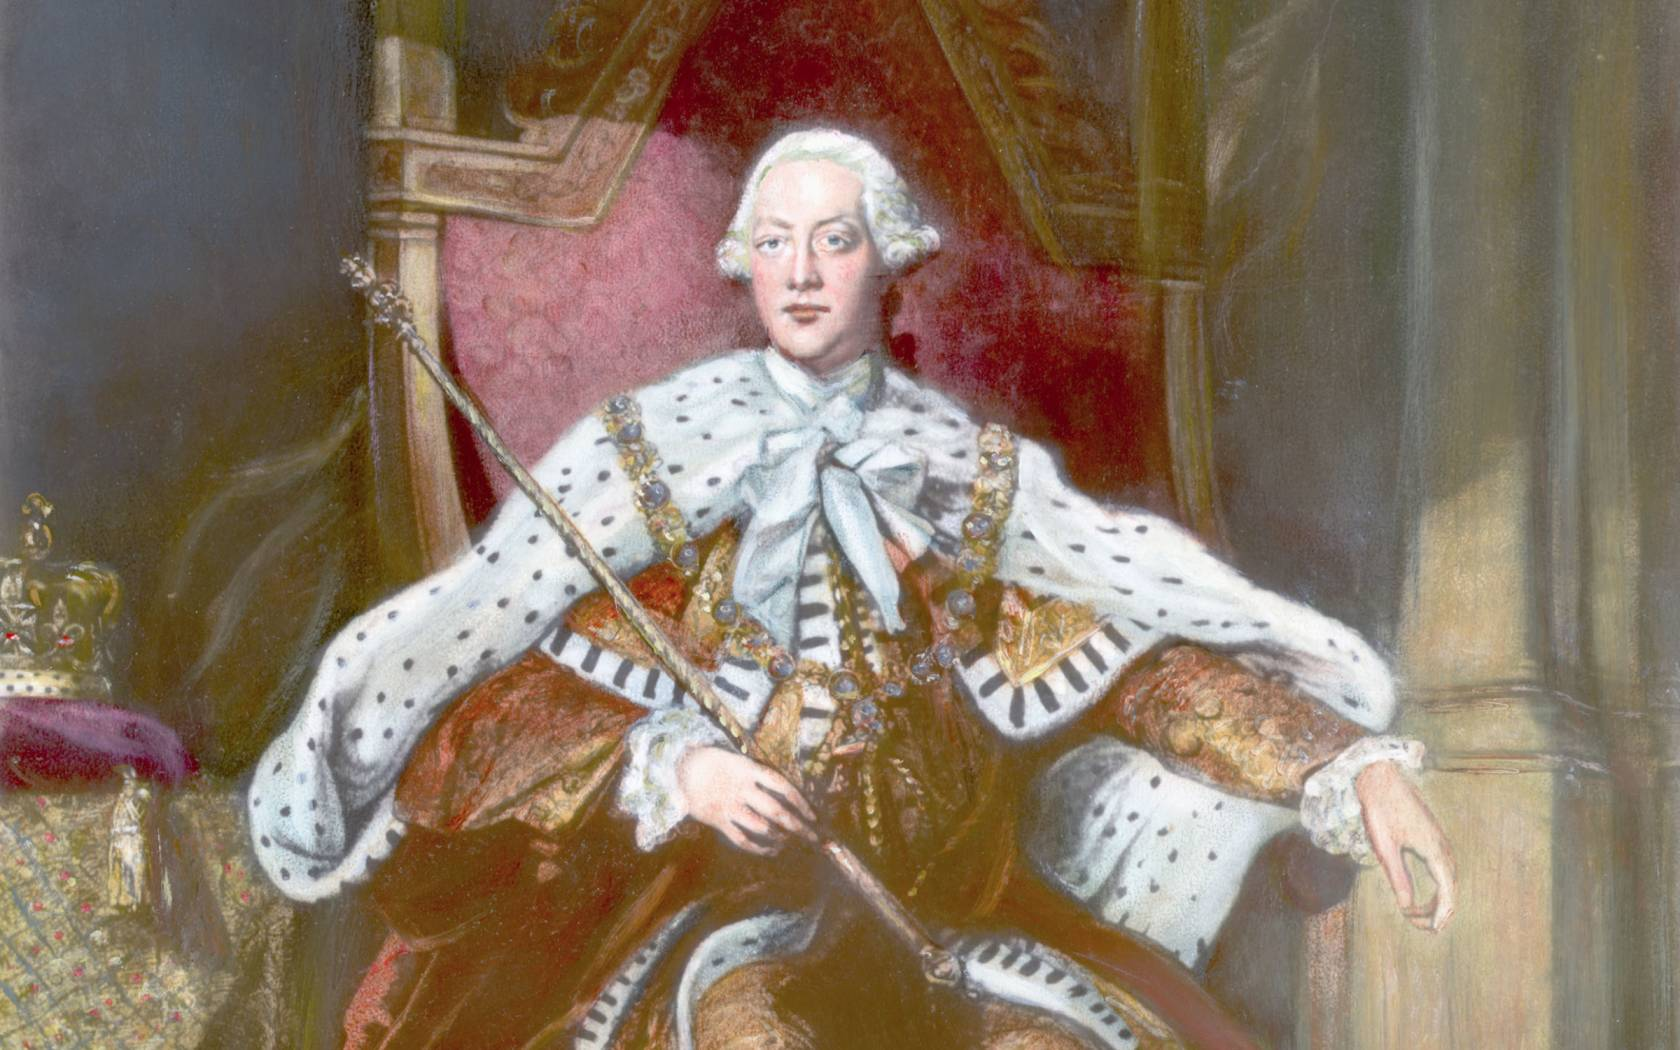 Painting of King George III of England, (1738-1820), seated on the throne in full regalia.